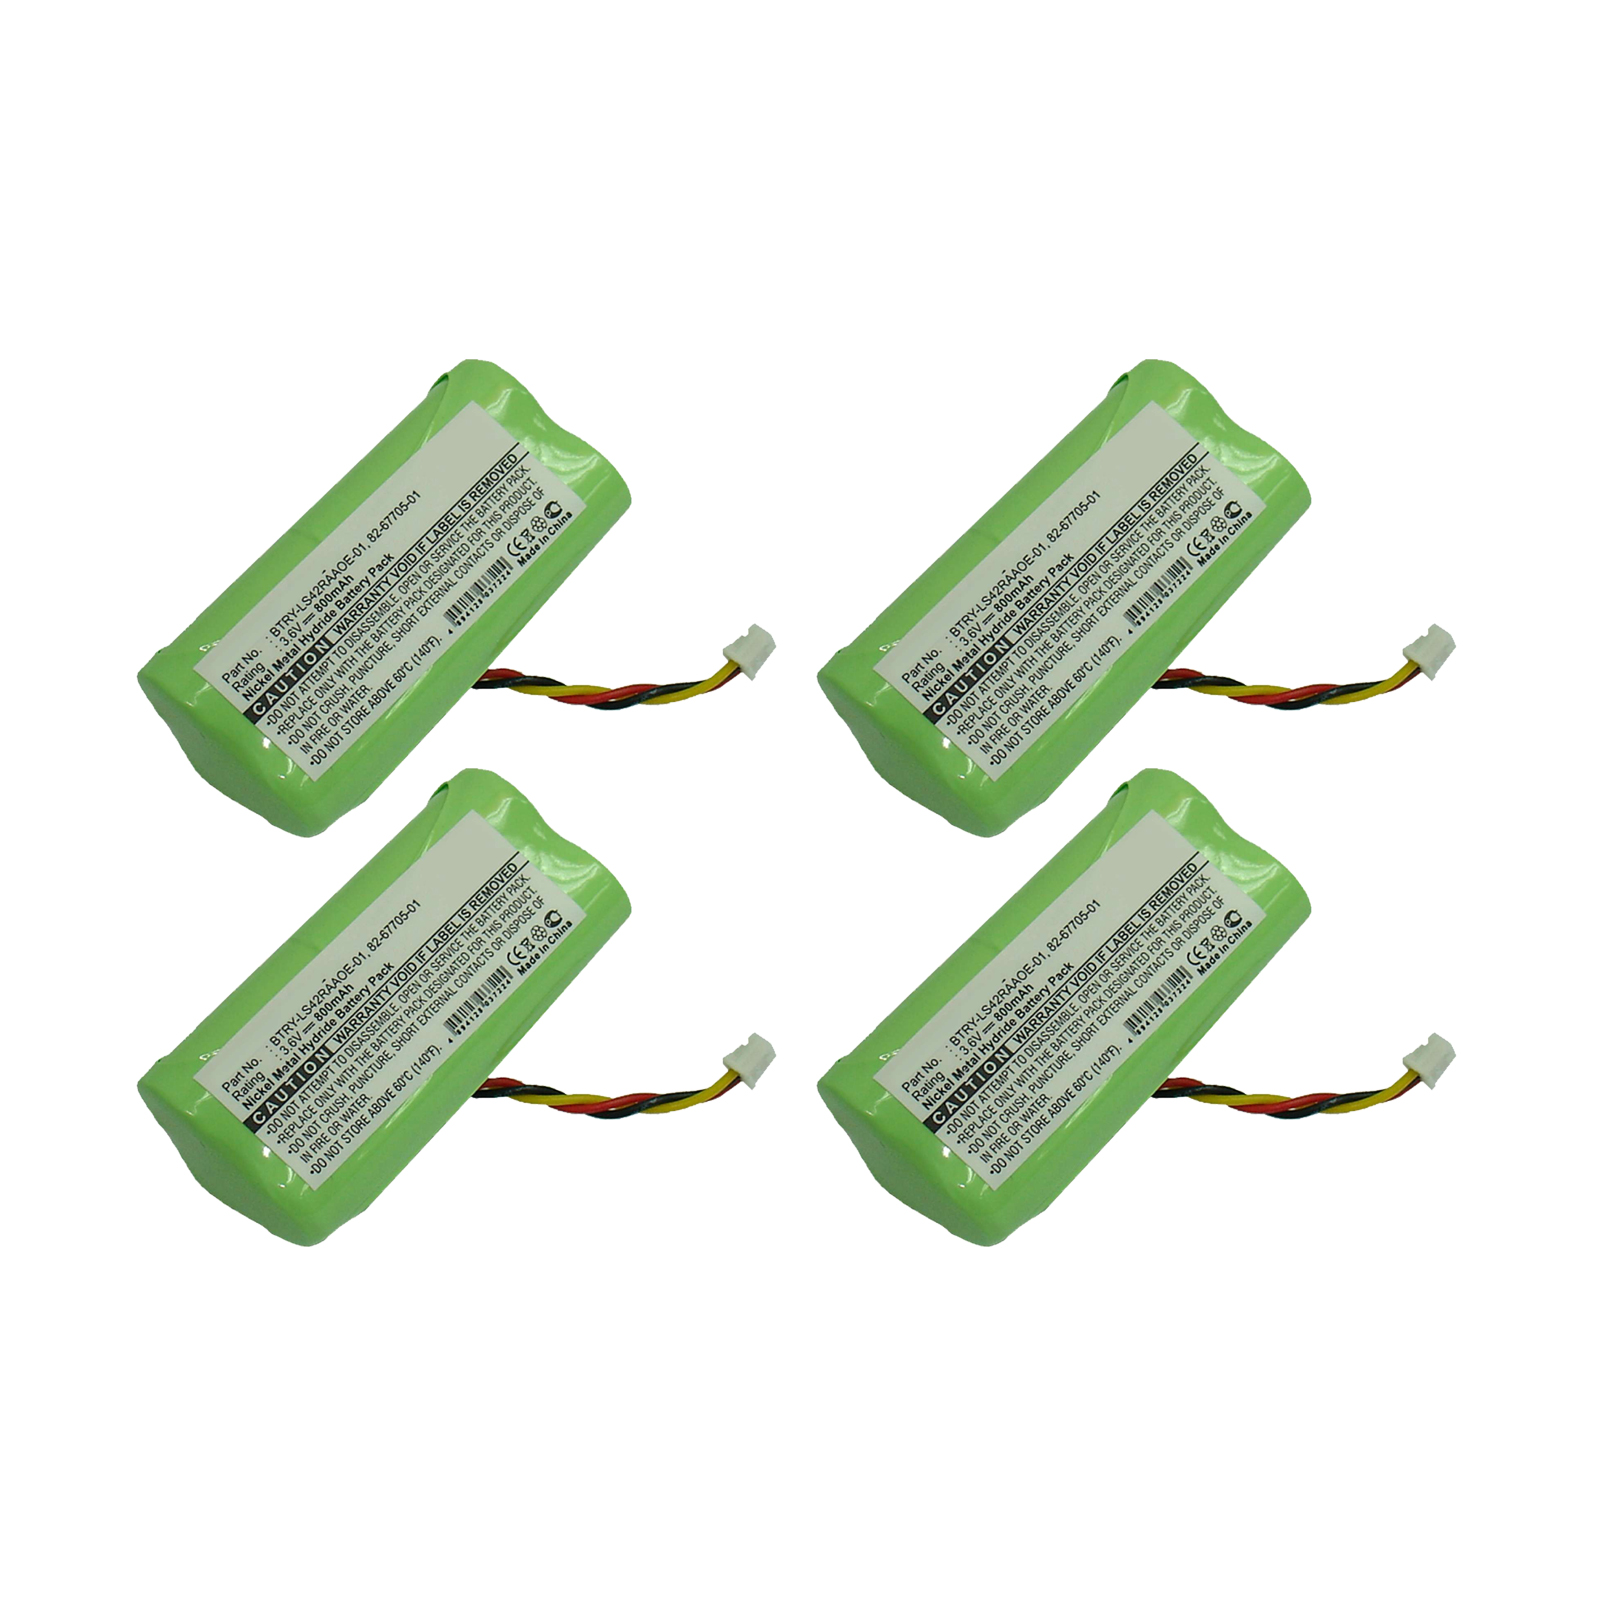 4x exell barcode scanner battery for symbol ls4278 replace 82 4x exell barcode scanner battery for symbol ls4278 replace 82 67705 01 usa ship biocorpaavc Images